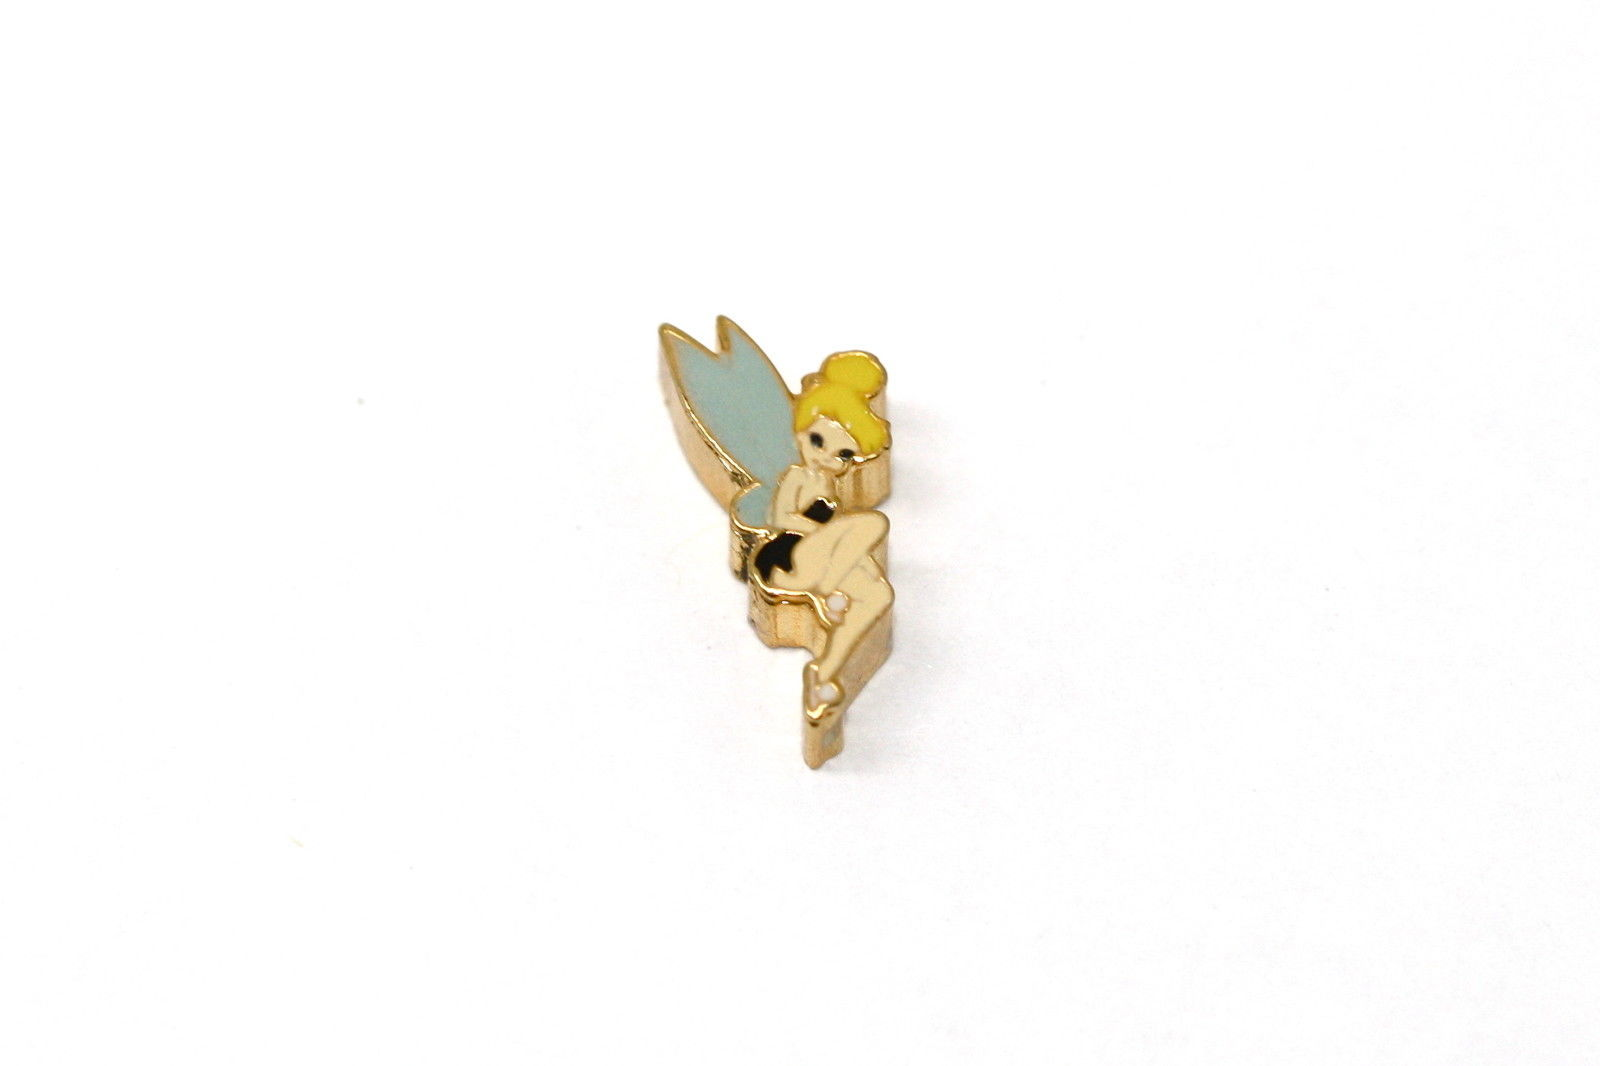 BRACCIALE DISNEY TINKERBELLE FAIRY GOLD STAINLESS STEEL GOLD PLATED CHARM